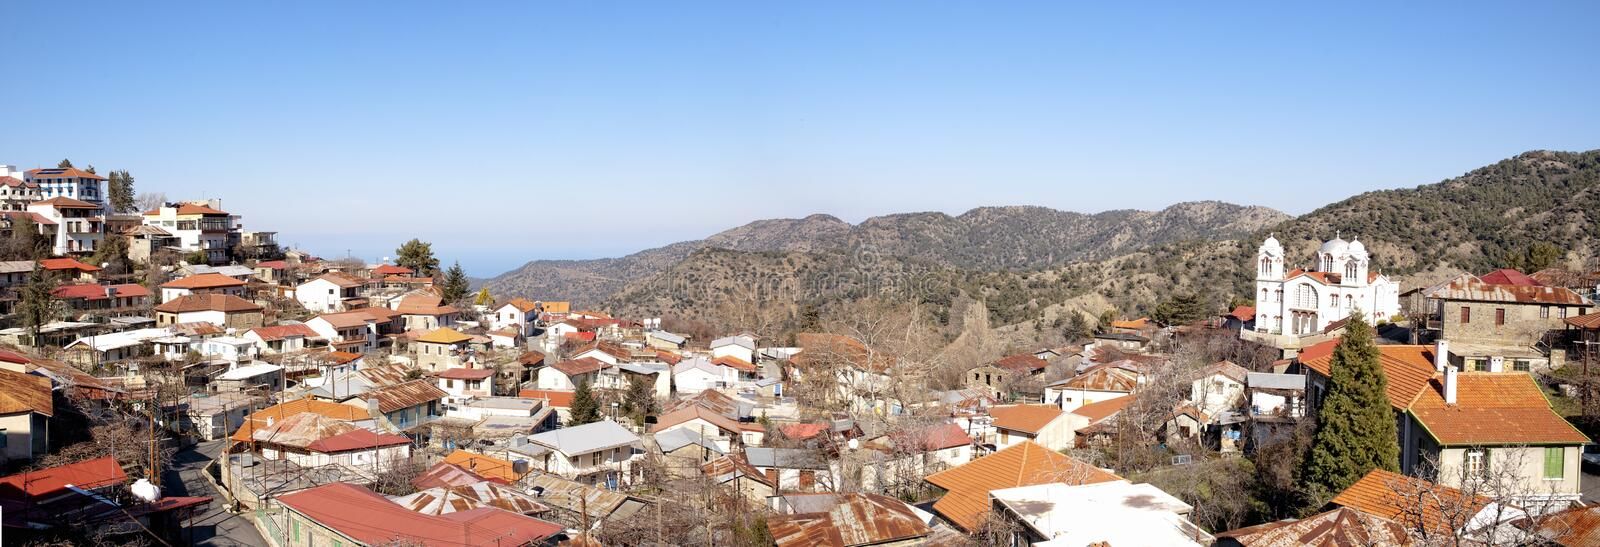 Download Panoramic View Of Pedoulas Village Stock Photo - Image: 17528888